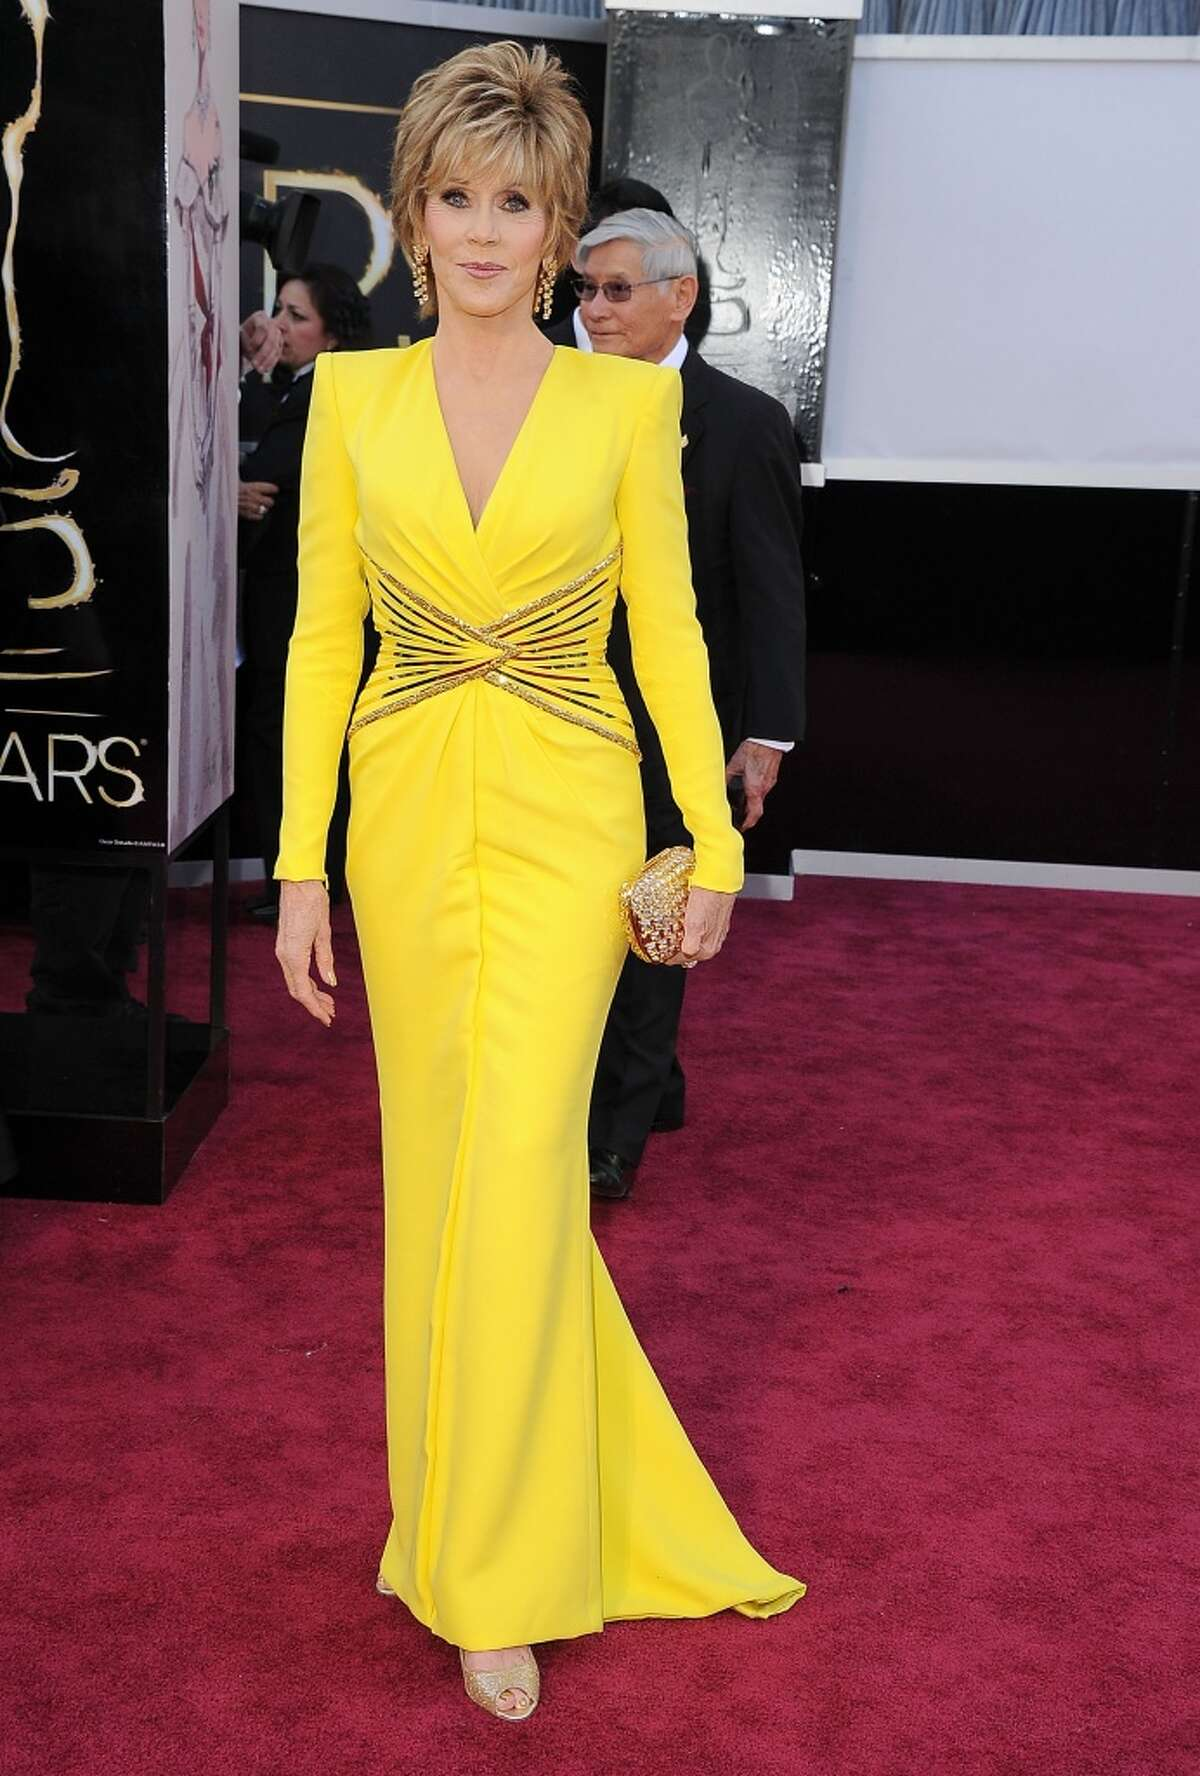 Jane Fonda went with bold color with this Atelier Versace at the Oscars.